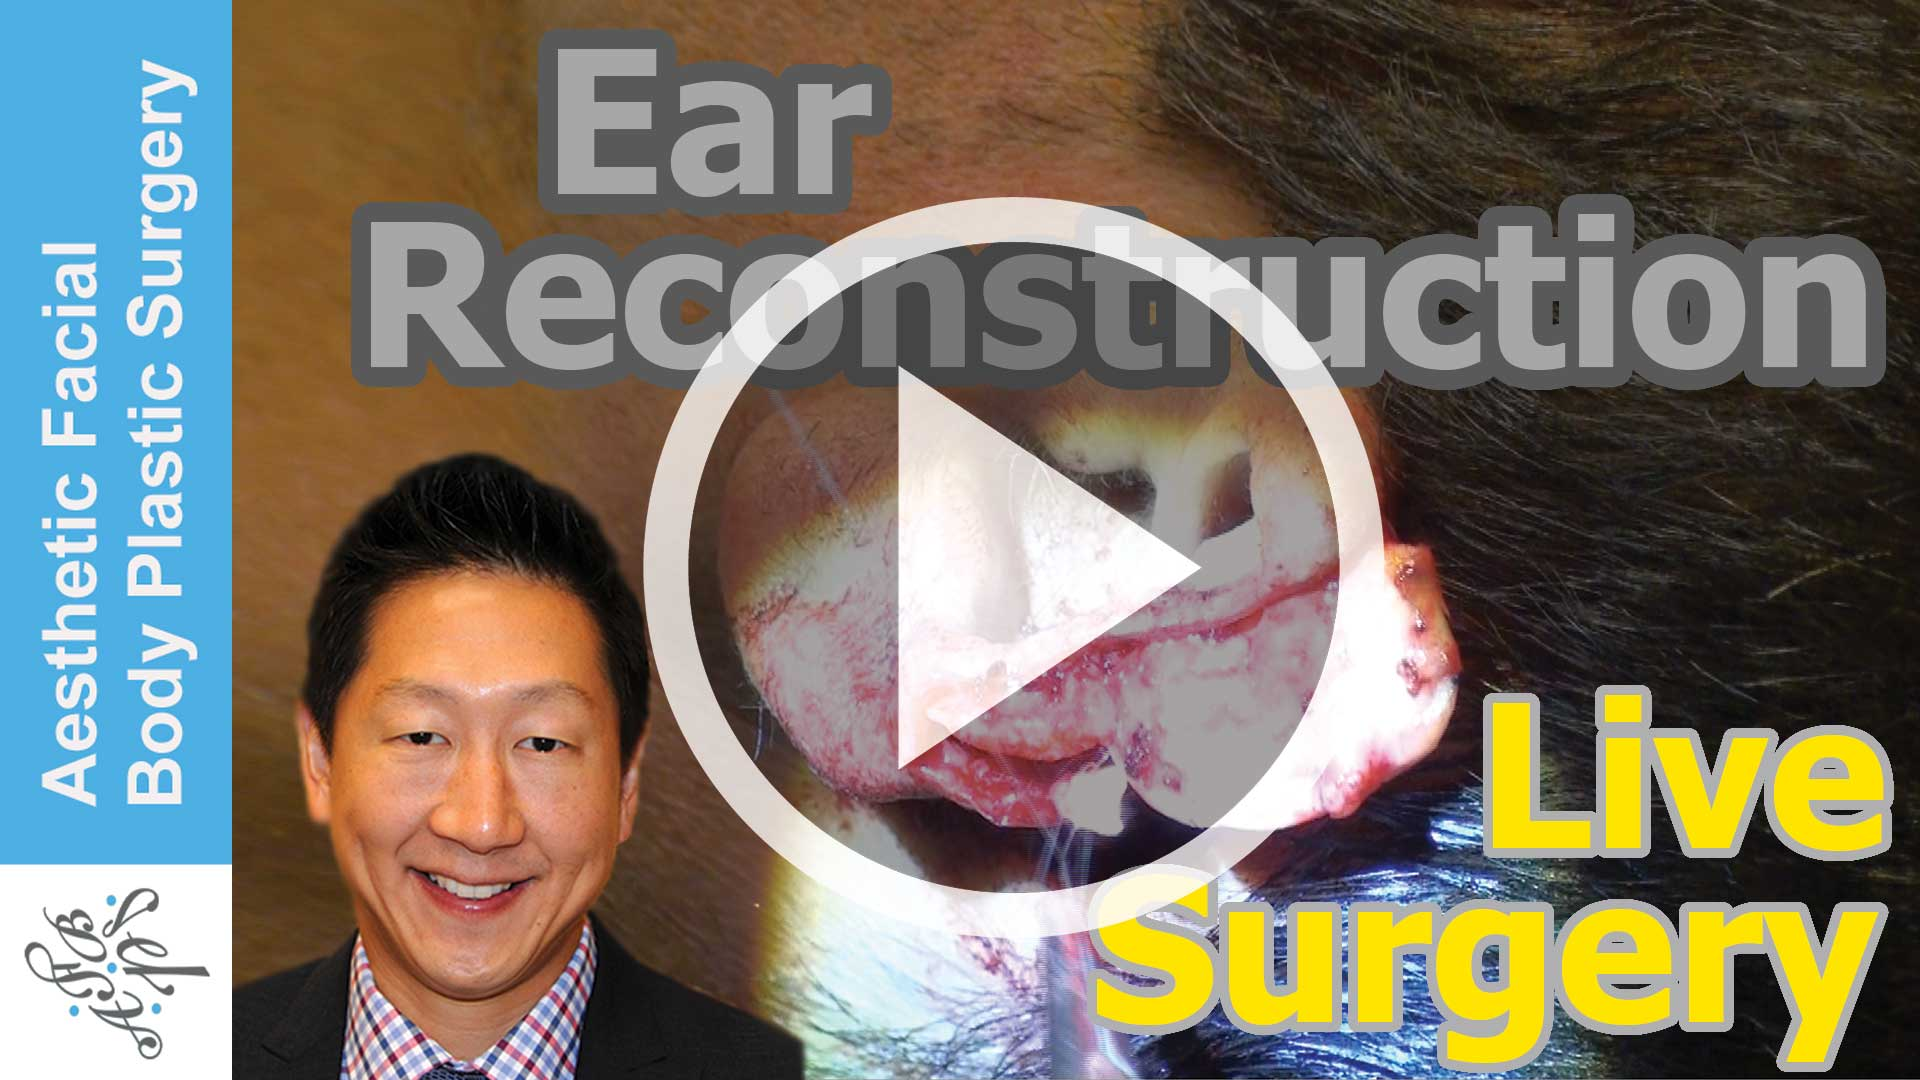 Ear Reconstruction Live Surgery of a Bite Injury of the Top of the Ear by Bellevue Seattle Dr Young